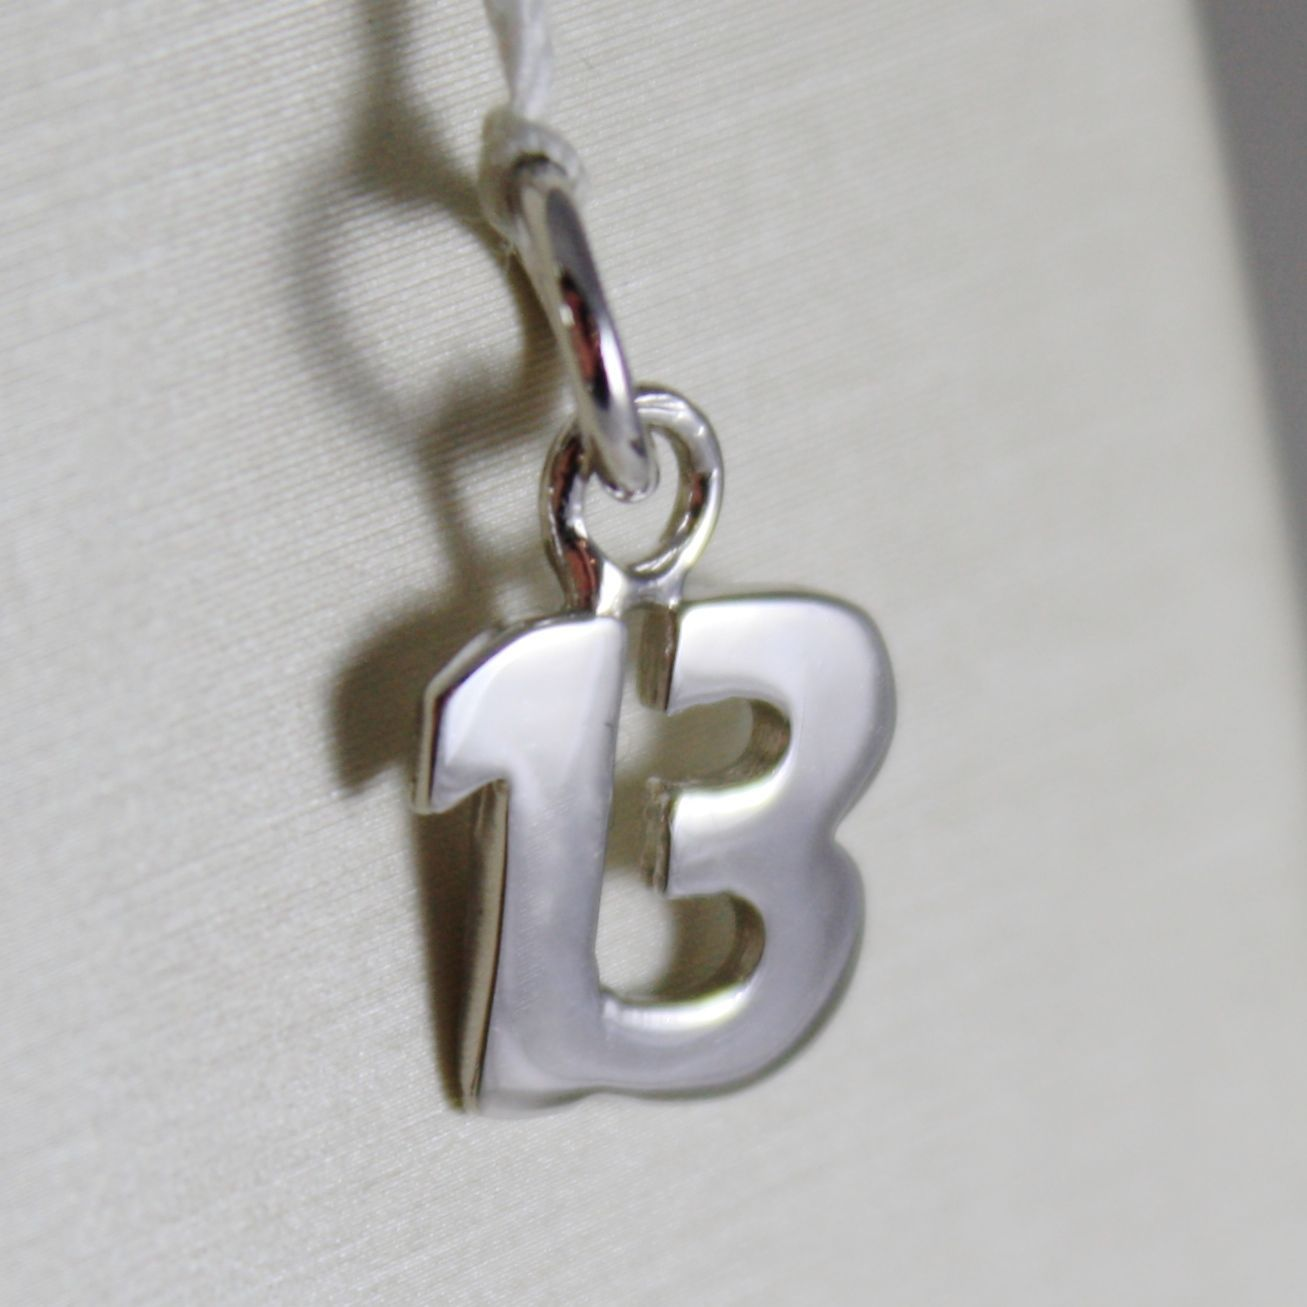 18K WHITE GOLD MINI 13 THIRTEEN PENDANT CHARM, LENGTH 0.59 INCHES, MADE IN ITALY